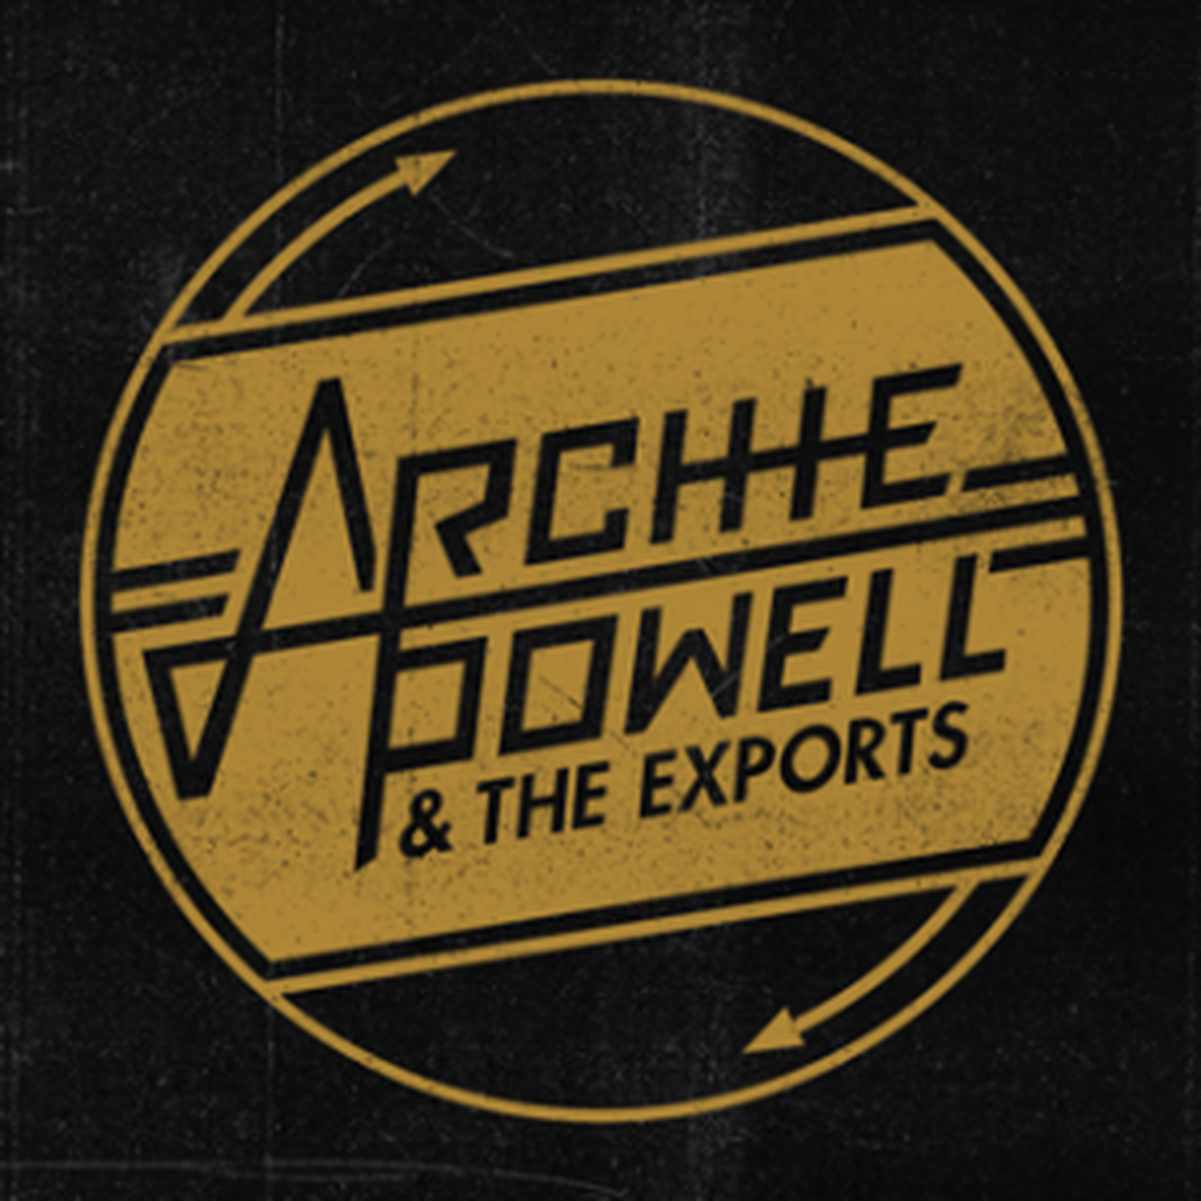 Archie Powell & The Exports, LLC wiki, Archie Powell & The Exports, LLC review, Archie Powell & The Exports, LLC history, Archie Powell & The Exports, LLC news